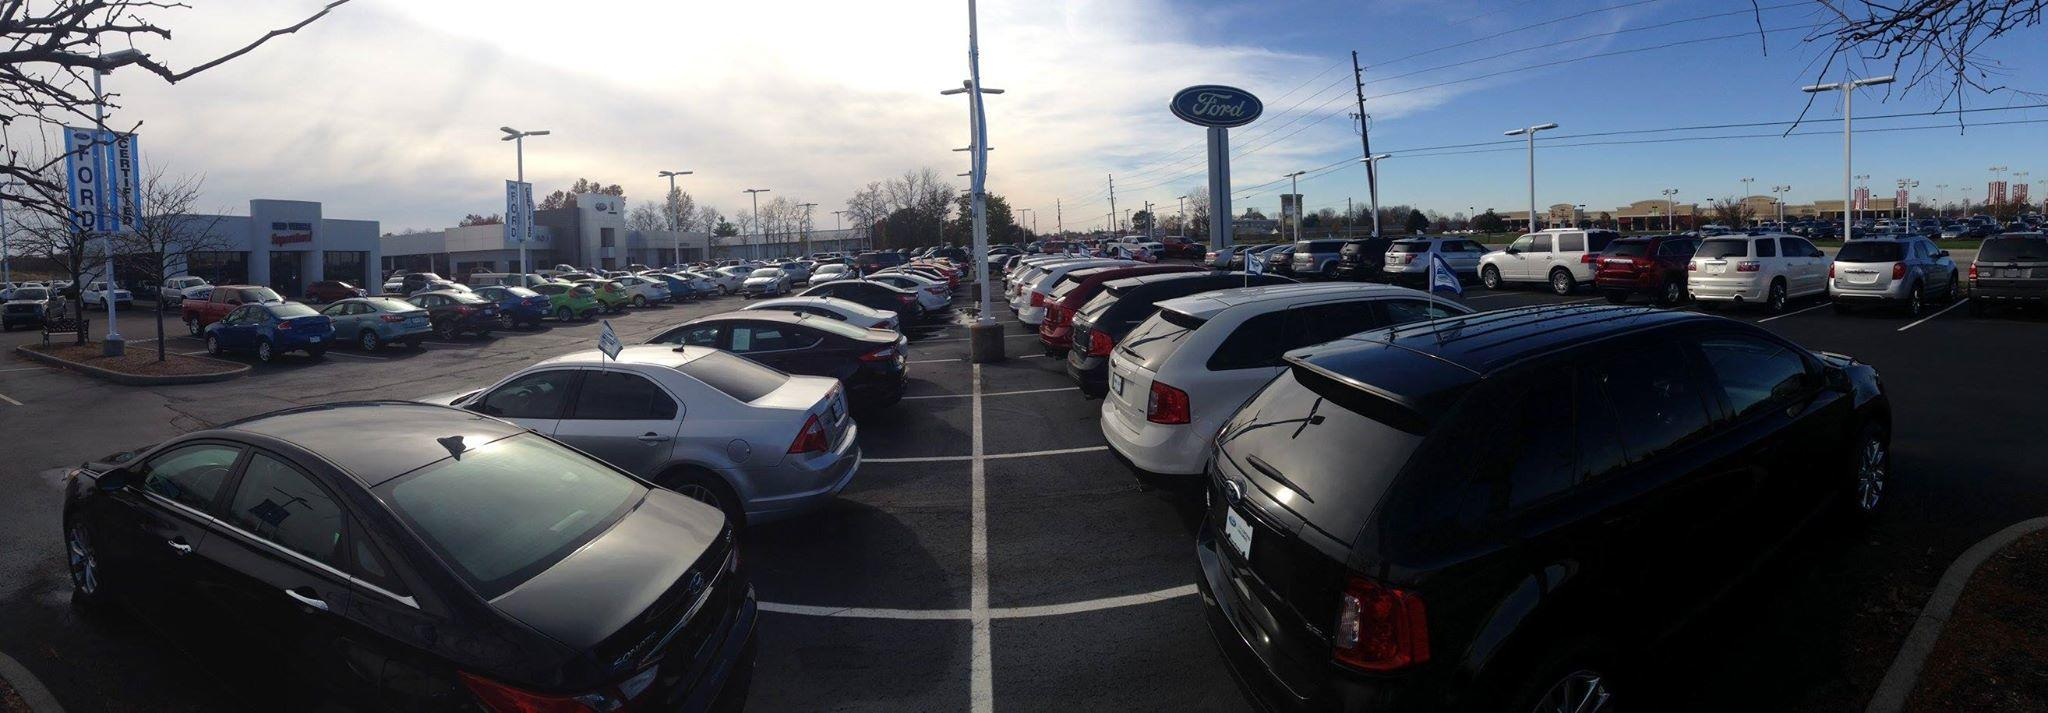 Andy Mohr Buick >> Plainfield Ford Dealer Near Indianapolis Andy Mohr Ford | Autos Post